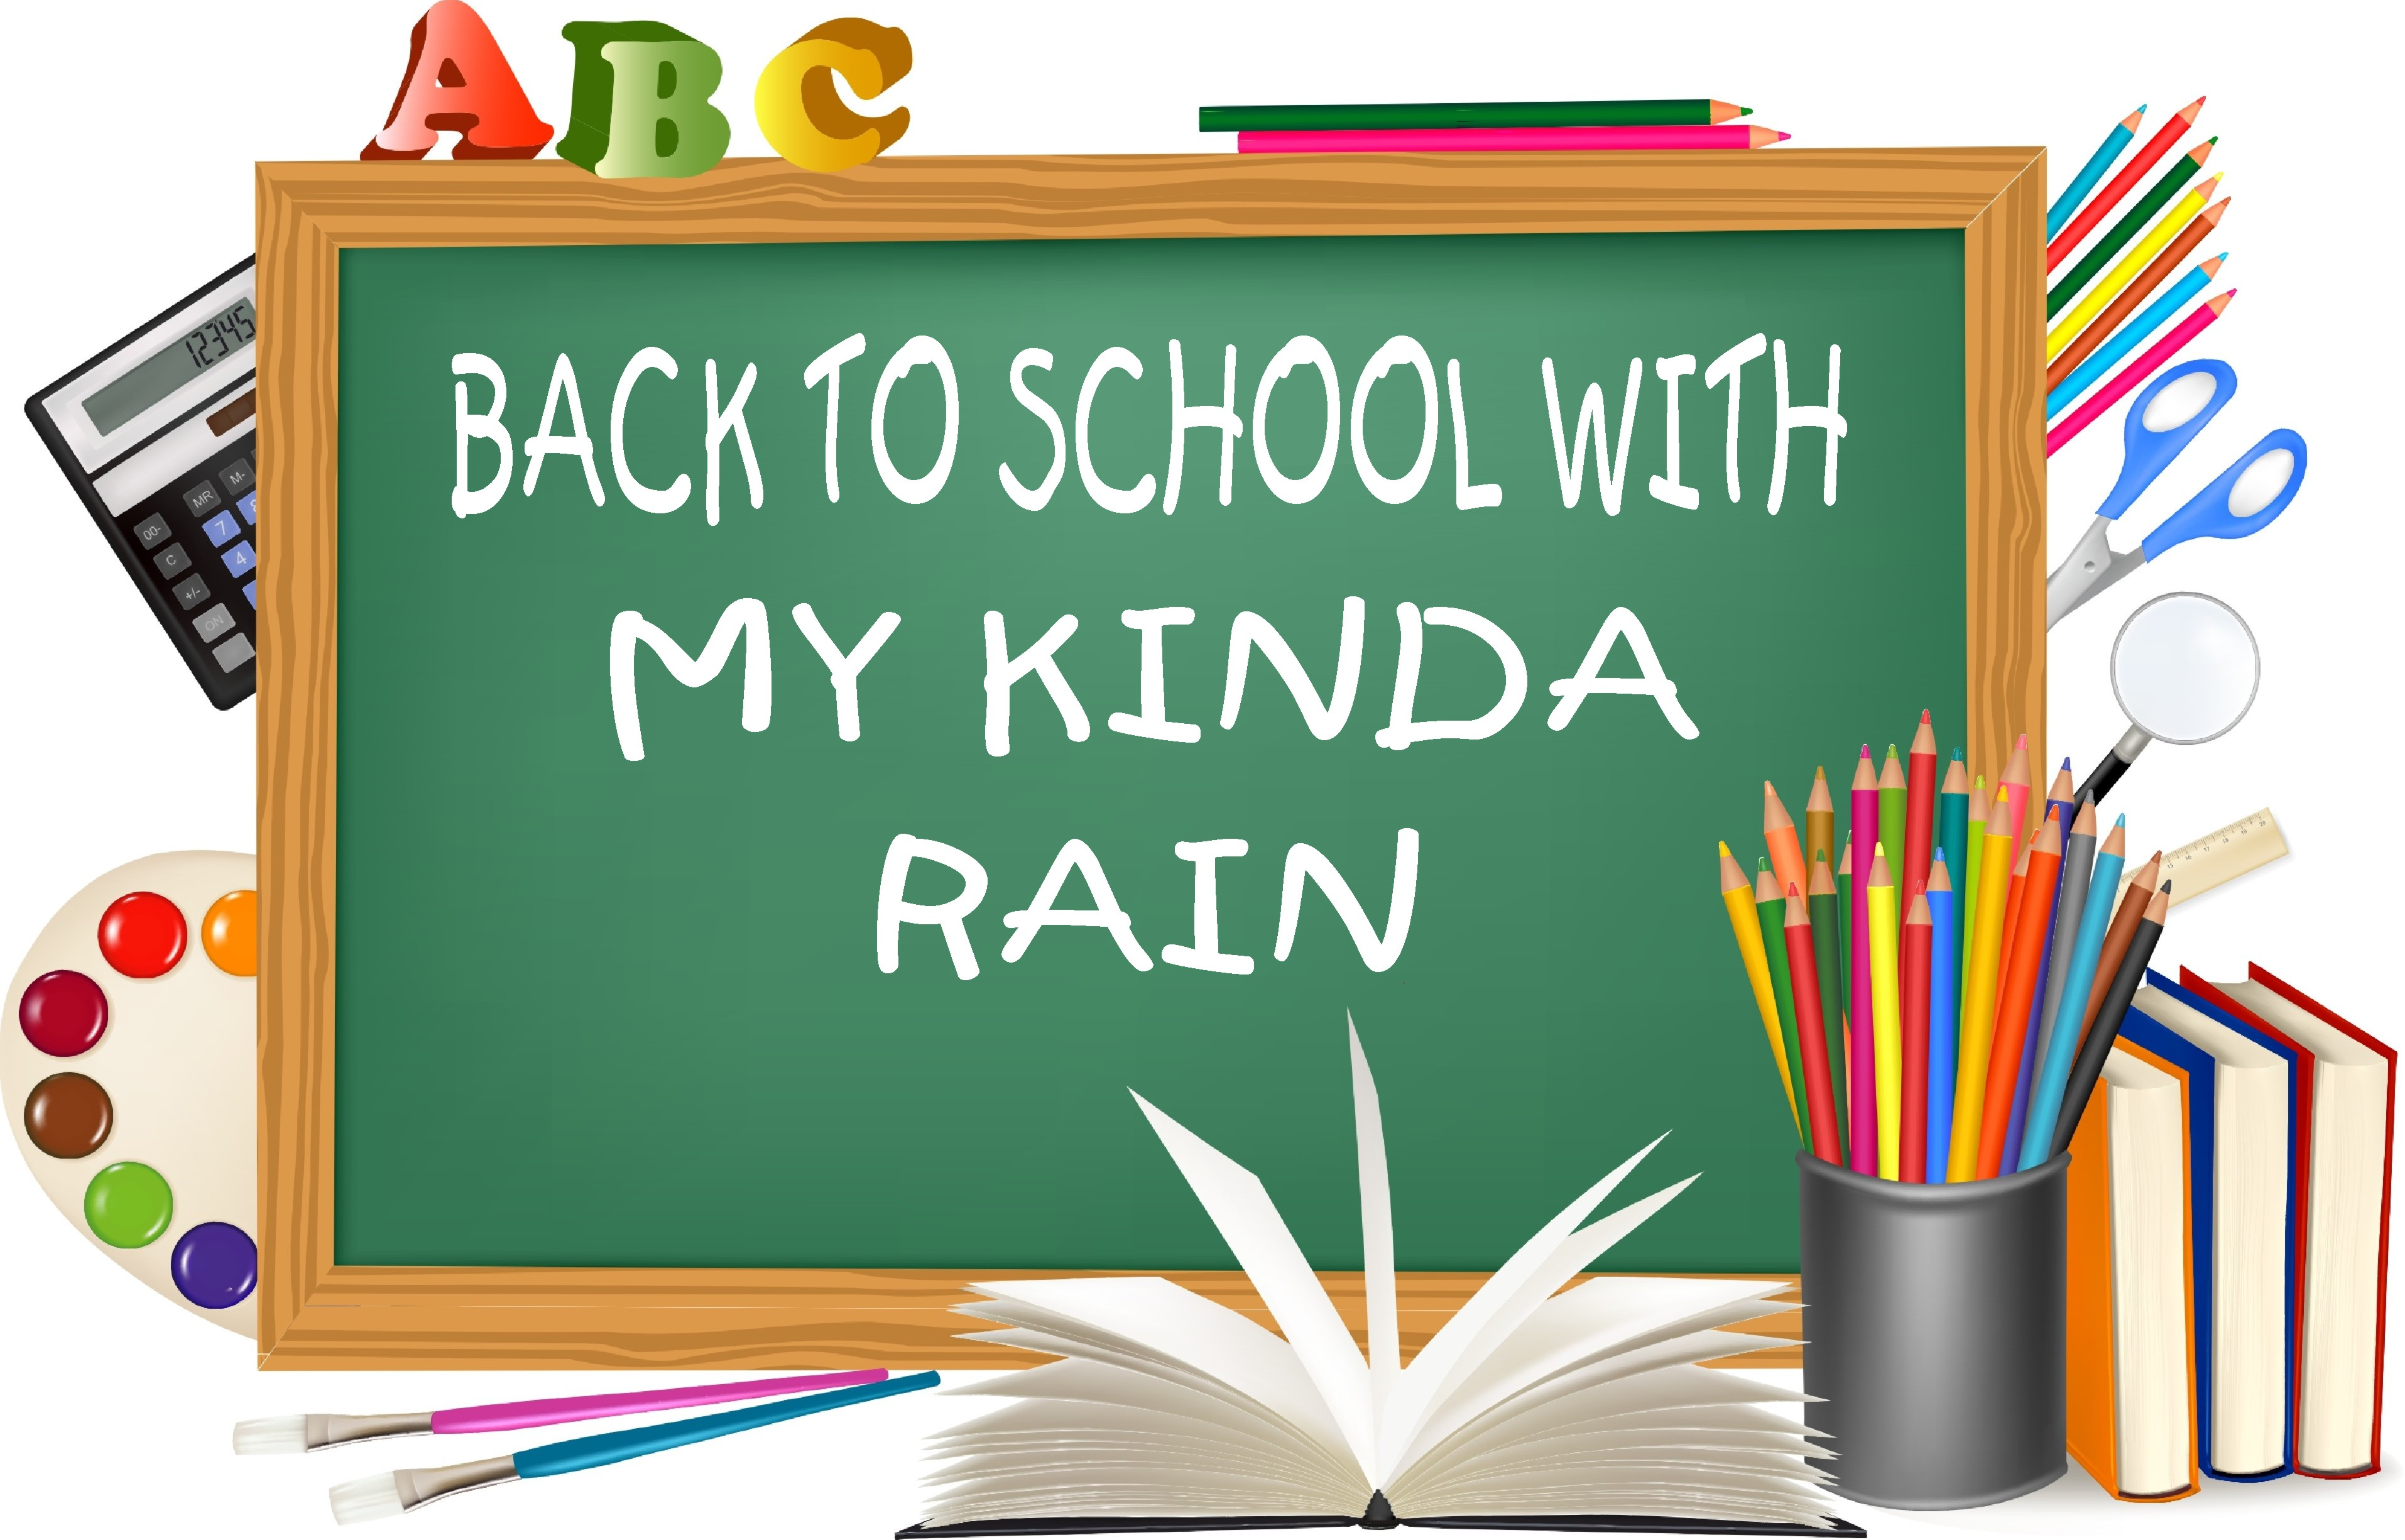 My kinda rain s back to school series is back again for a second